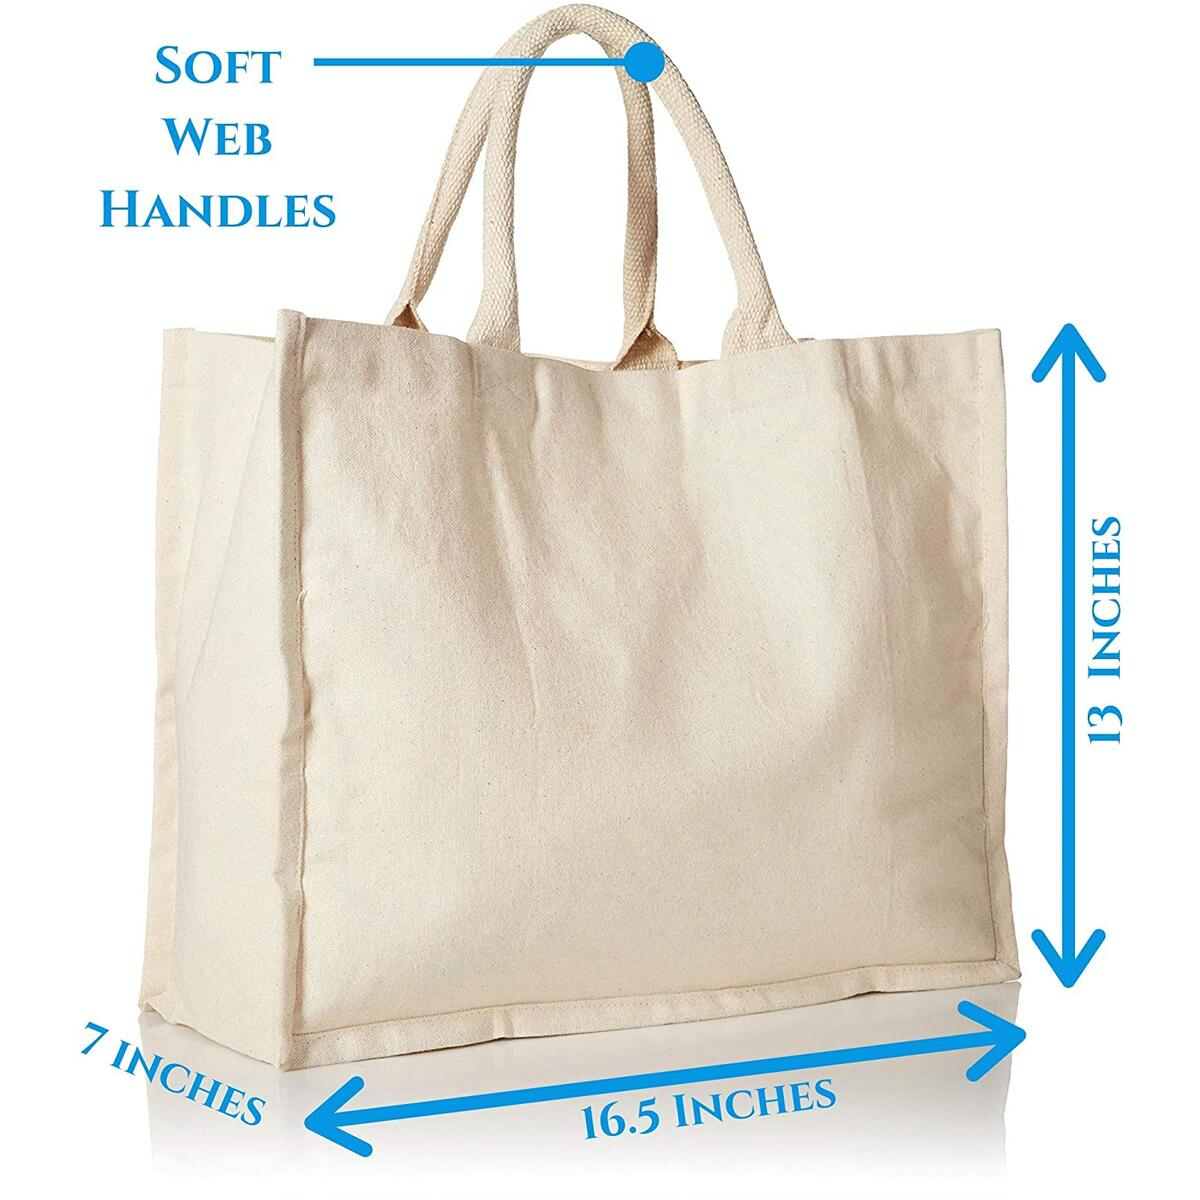 5 Pack Canvas Reusable Grocery Bags, 100% Cotton Shopping Tote for Daily Use, Reusable Grocery Bag with Cotton Web Handle, 16.5 Inches Wide, 13 inches tall, 7 inches wide Gusset, Ivory Colour